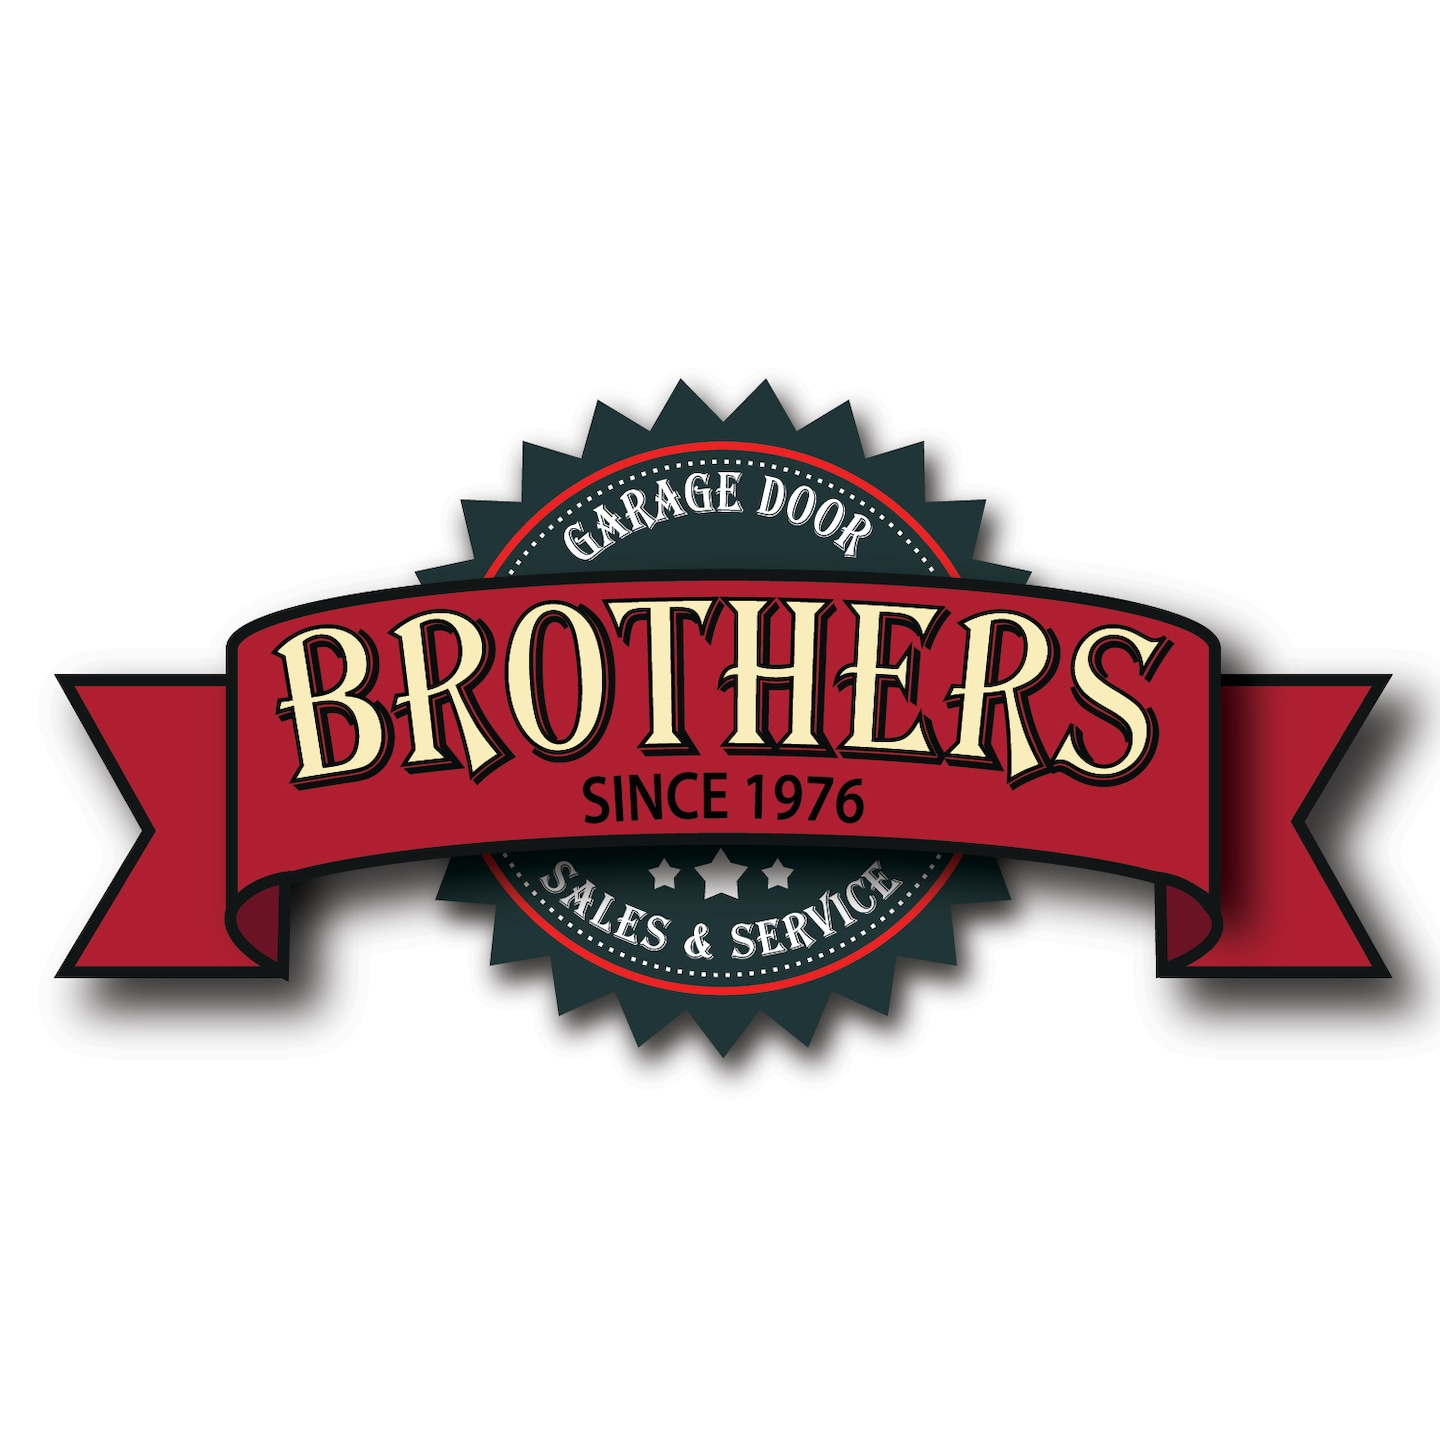 Brother's Garage Door Sales & Service LLC